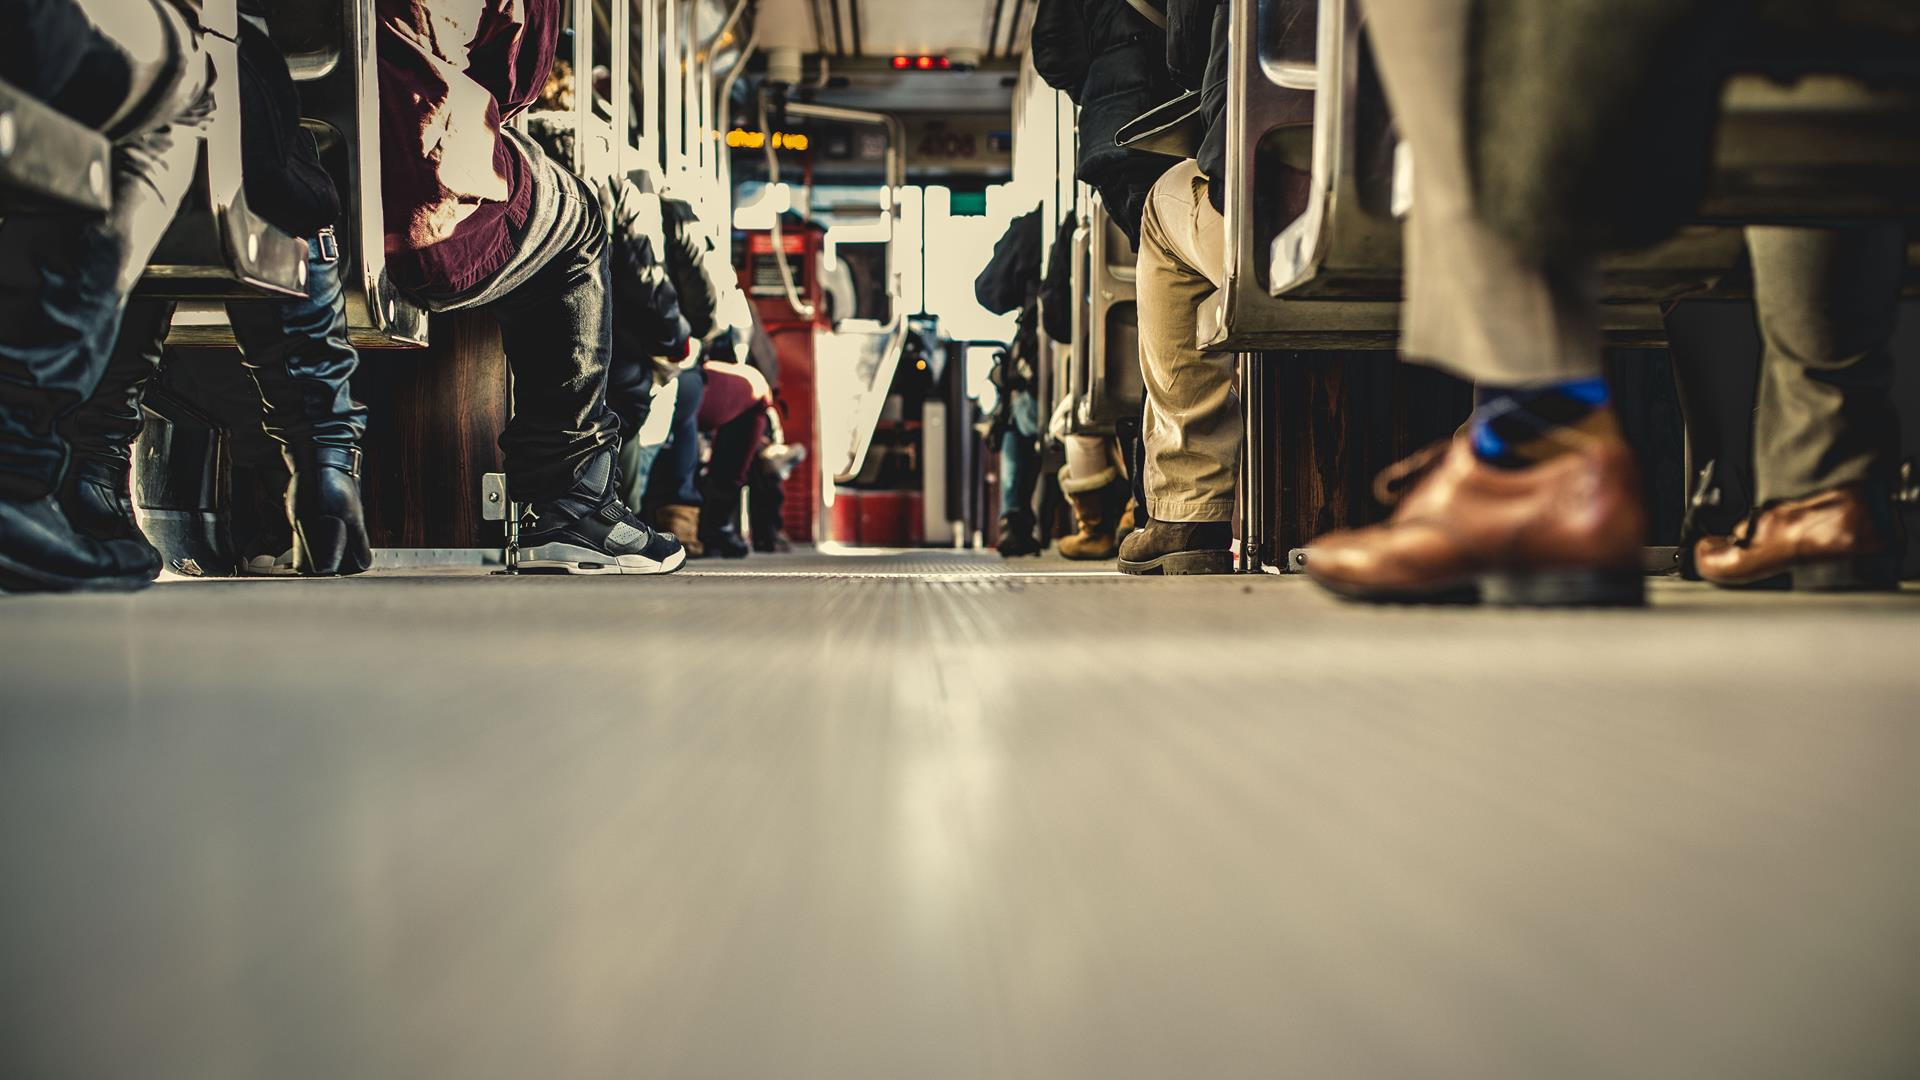 Metropolitana Folla Povertà Matthew Henry Unsplash